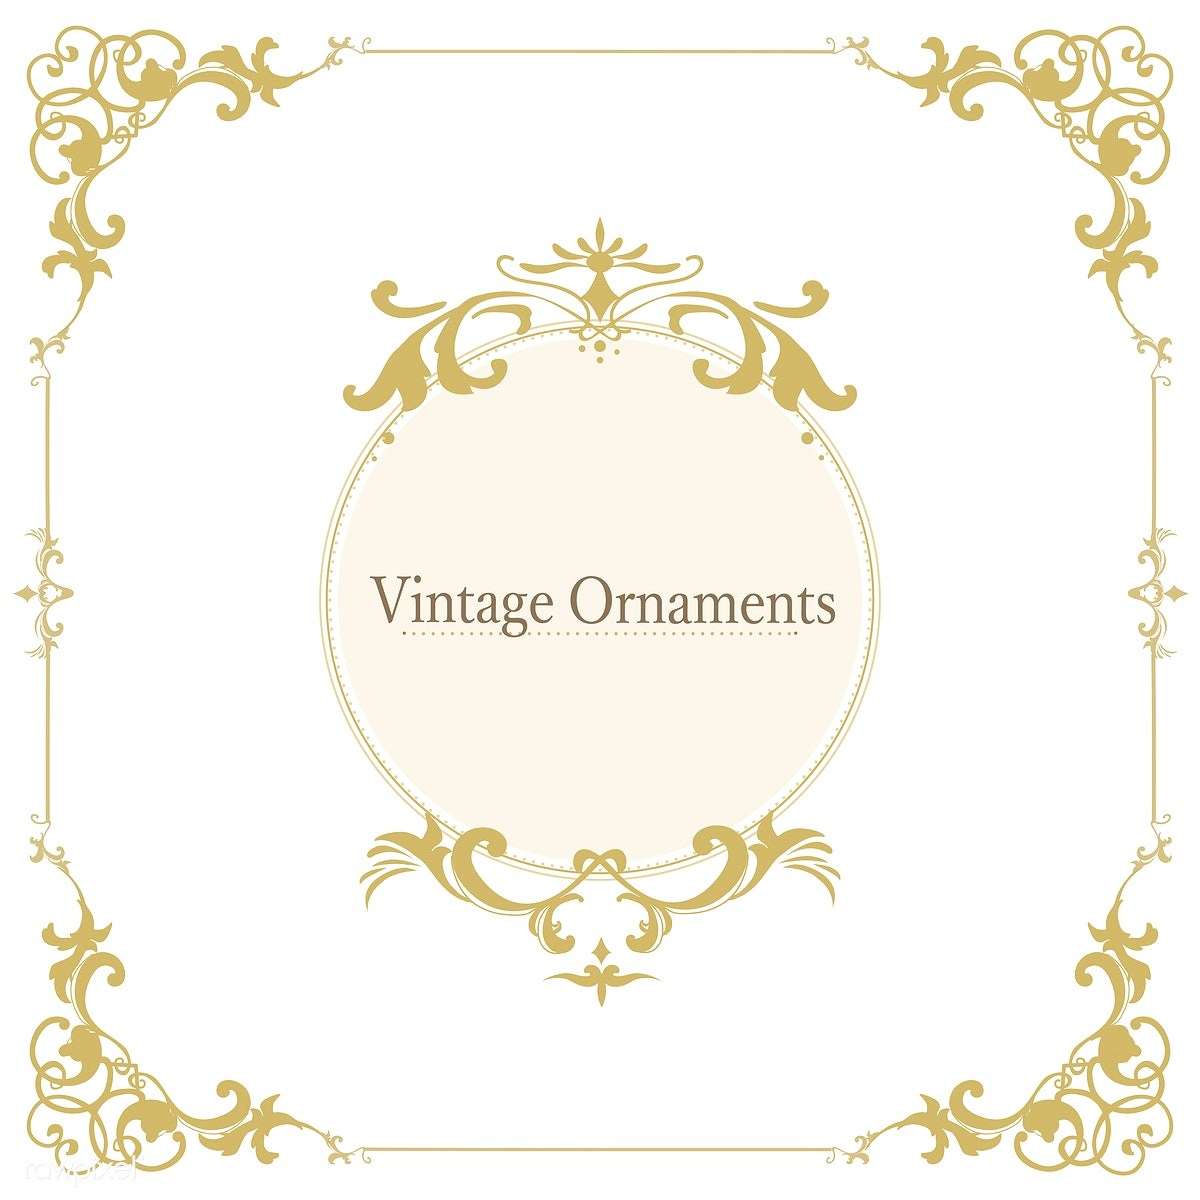 Download premium illustration of Vintage flourish ornament frame vector